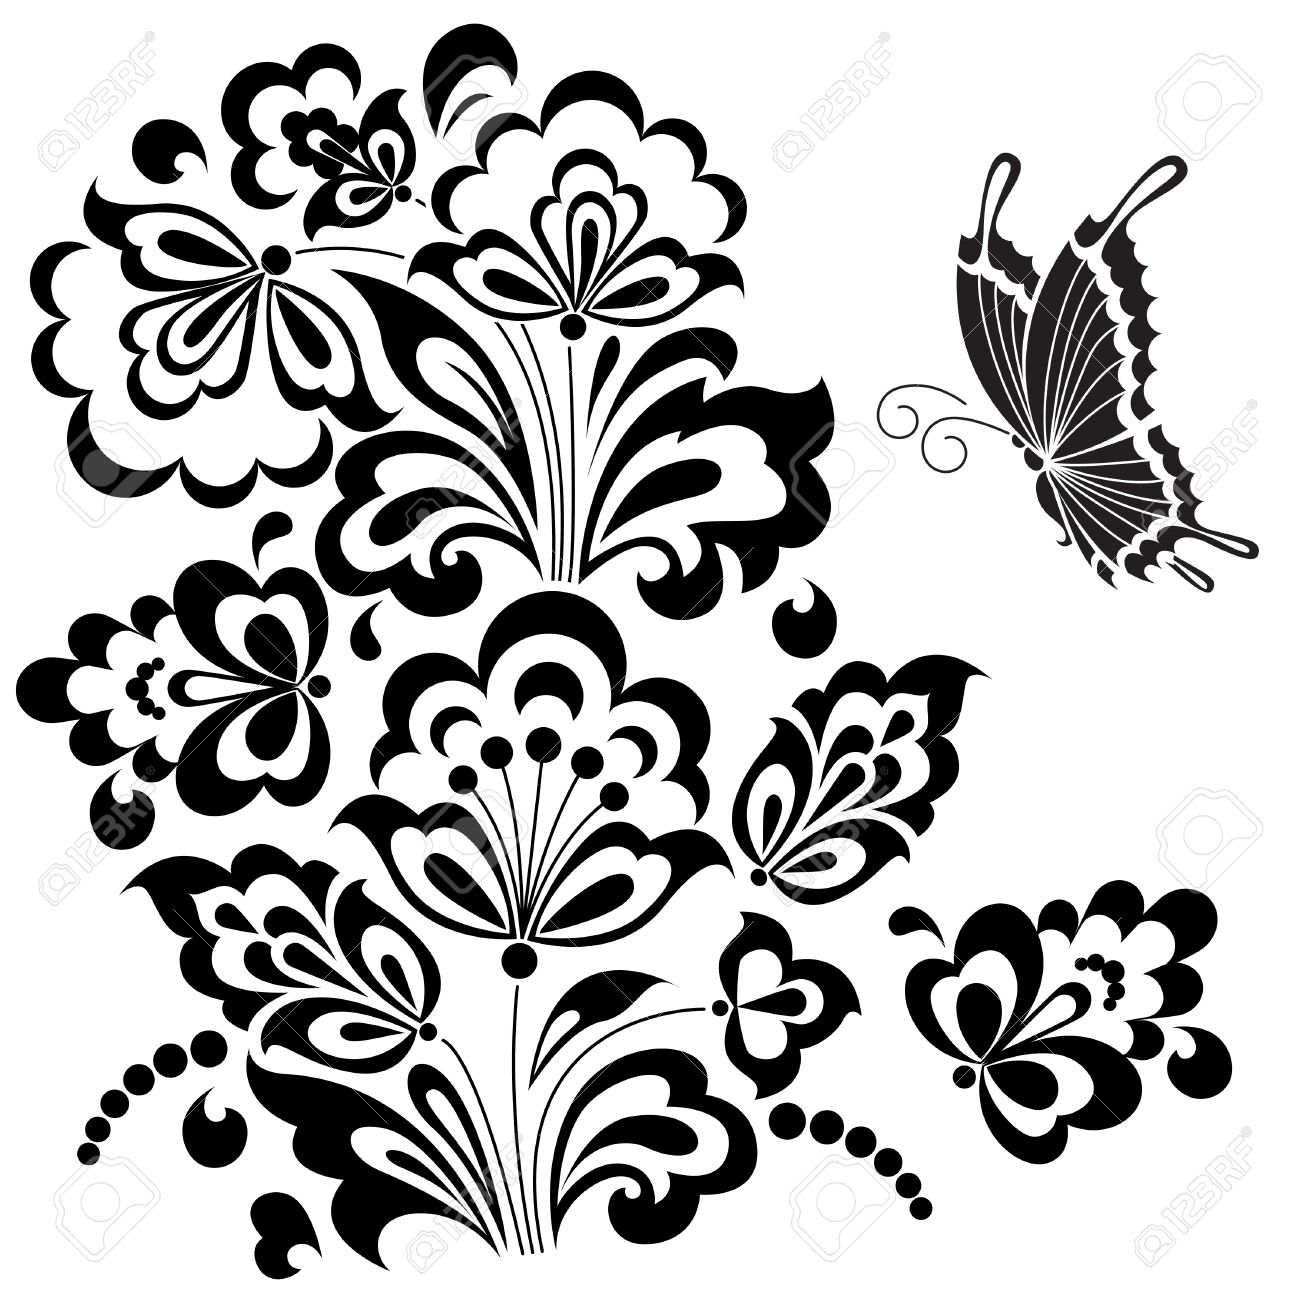 Stylized Floral Design Royalty Free Cliparts Vectors And Stock